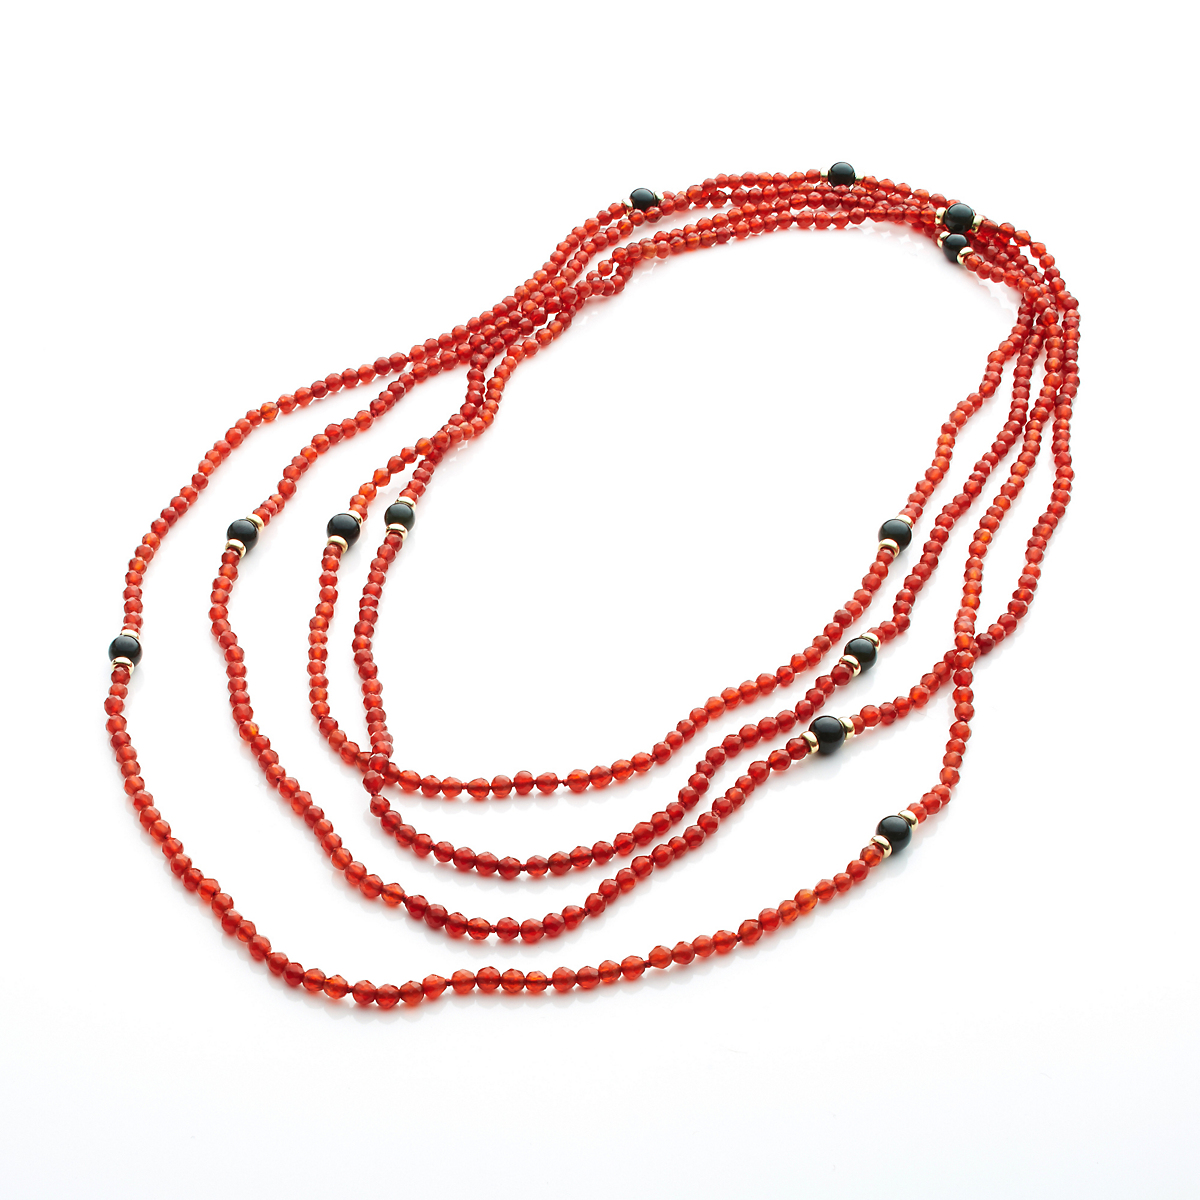 Gump's Faceted Carnelian & Black Jade Long Rope